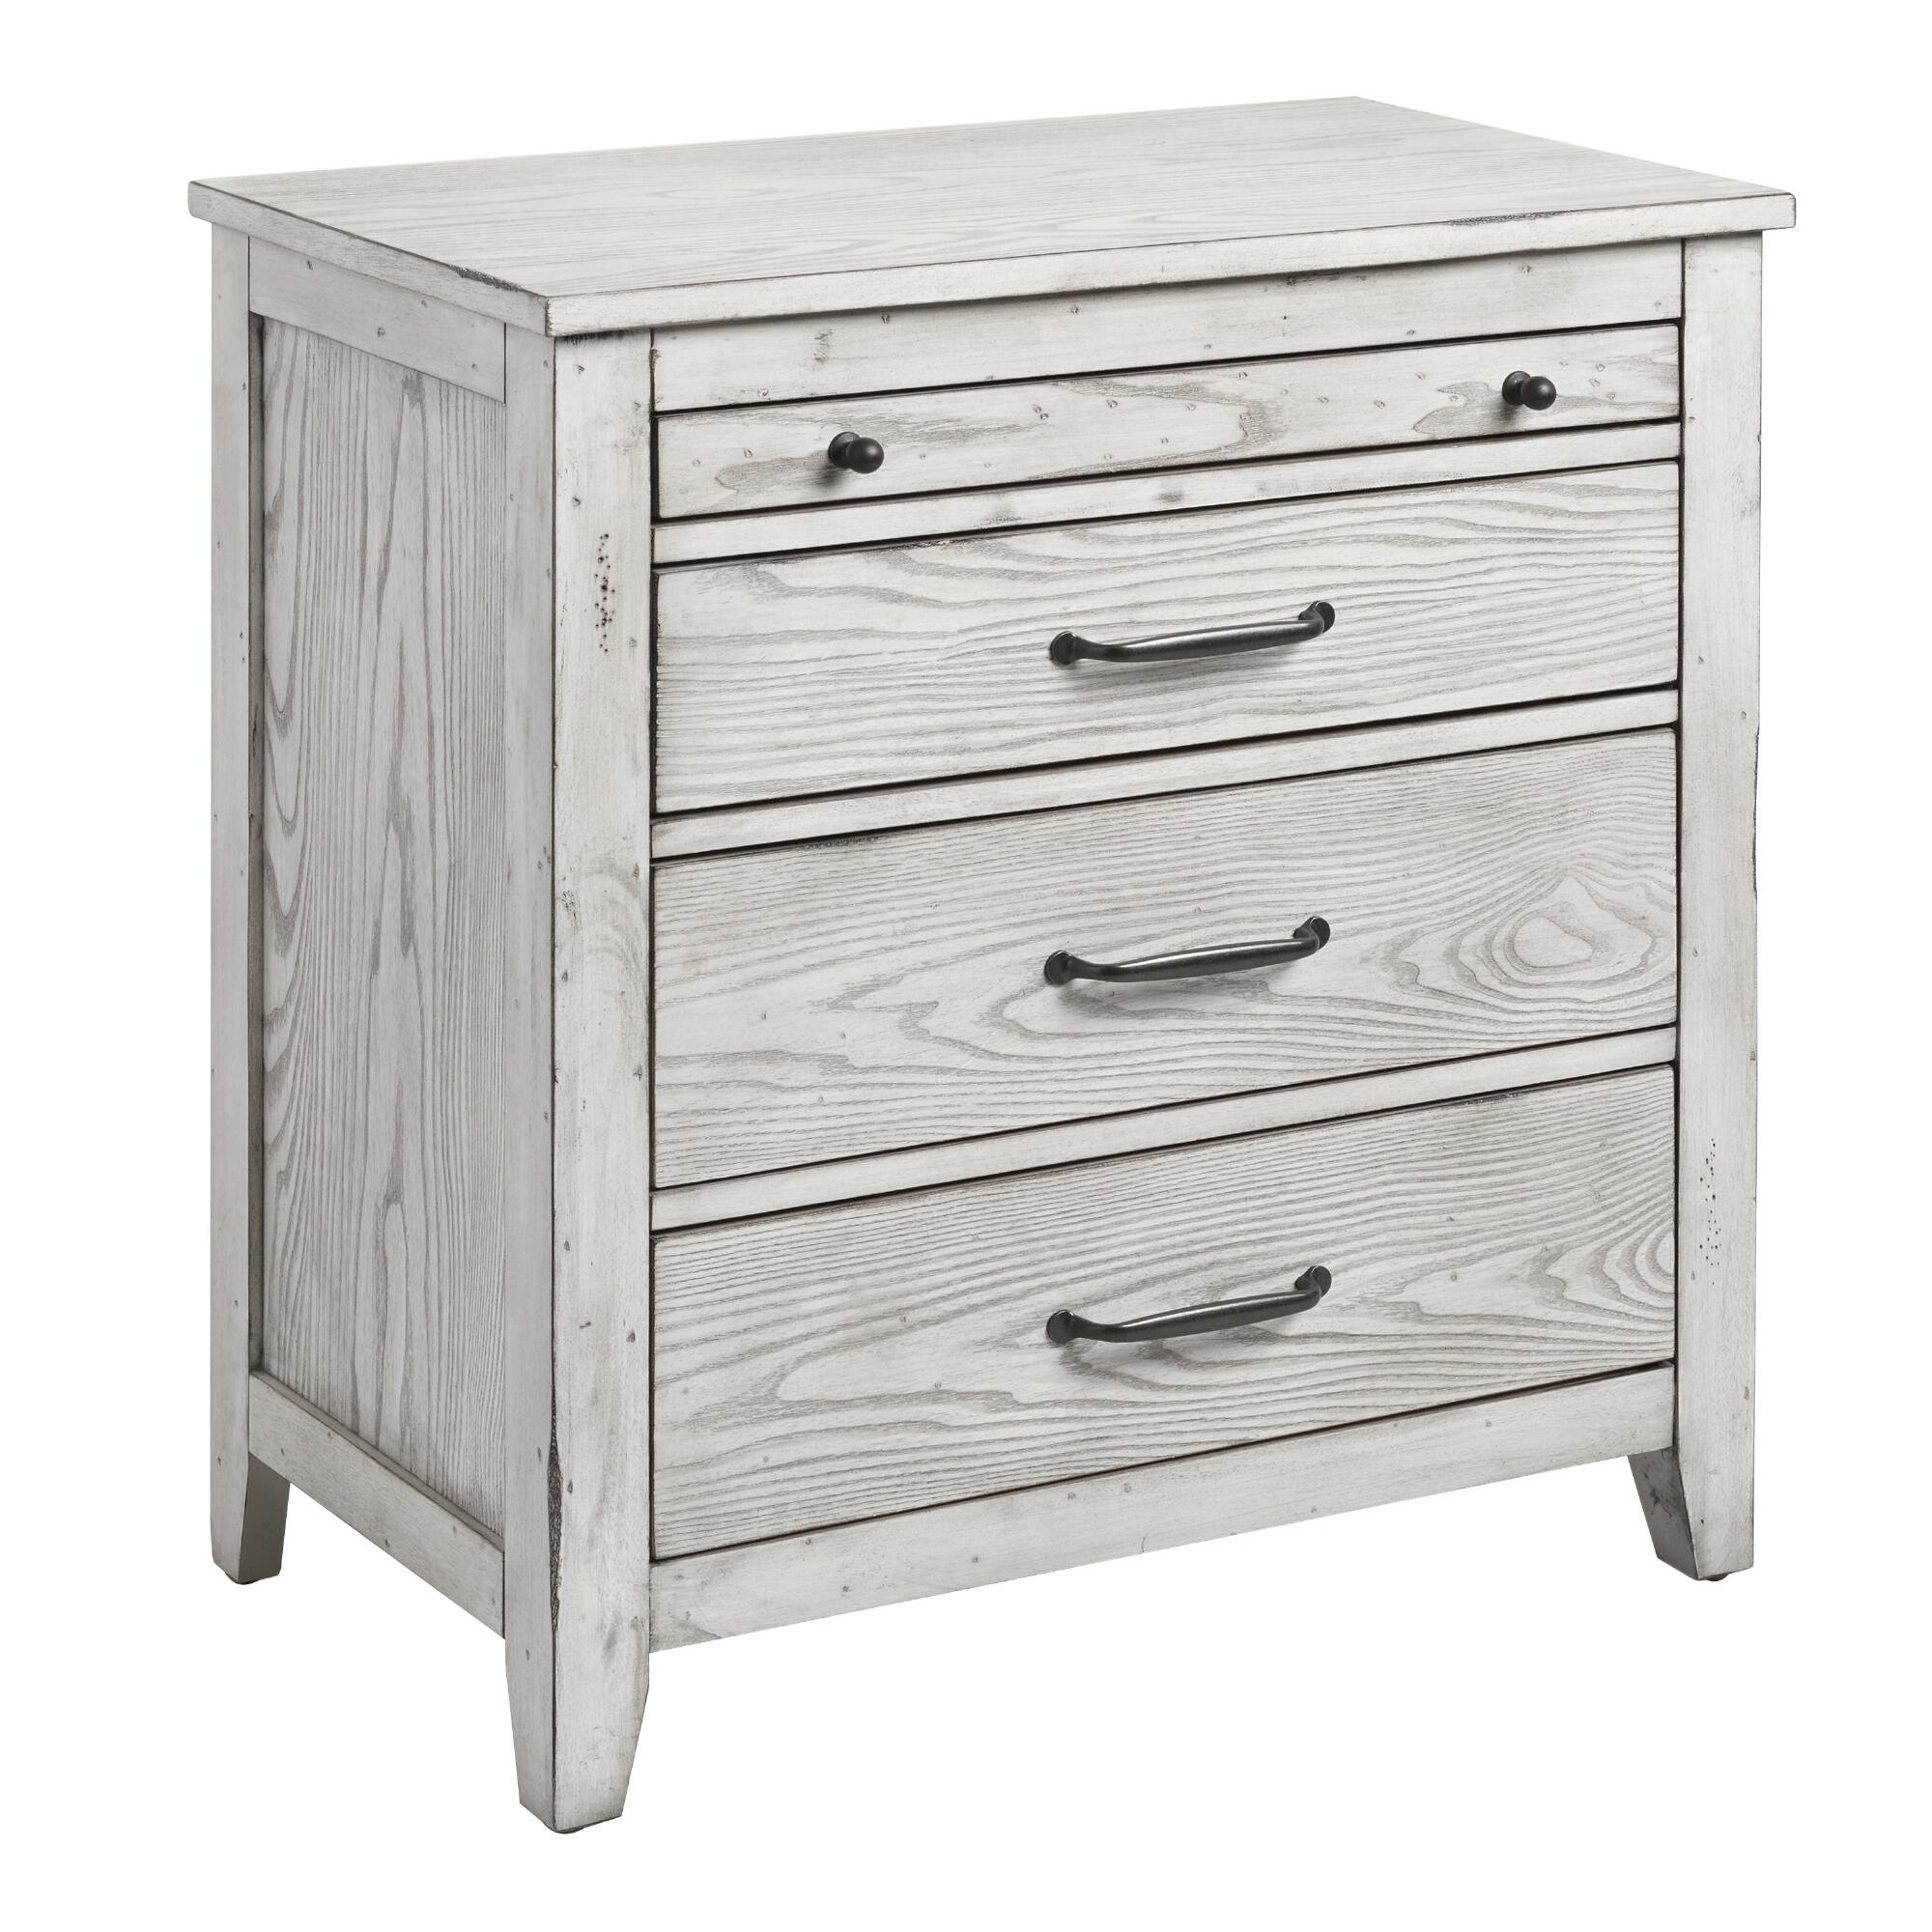 Gray mahogany wood verena nightstand